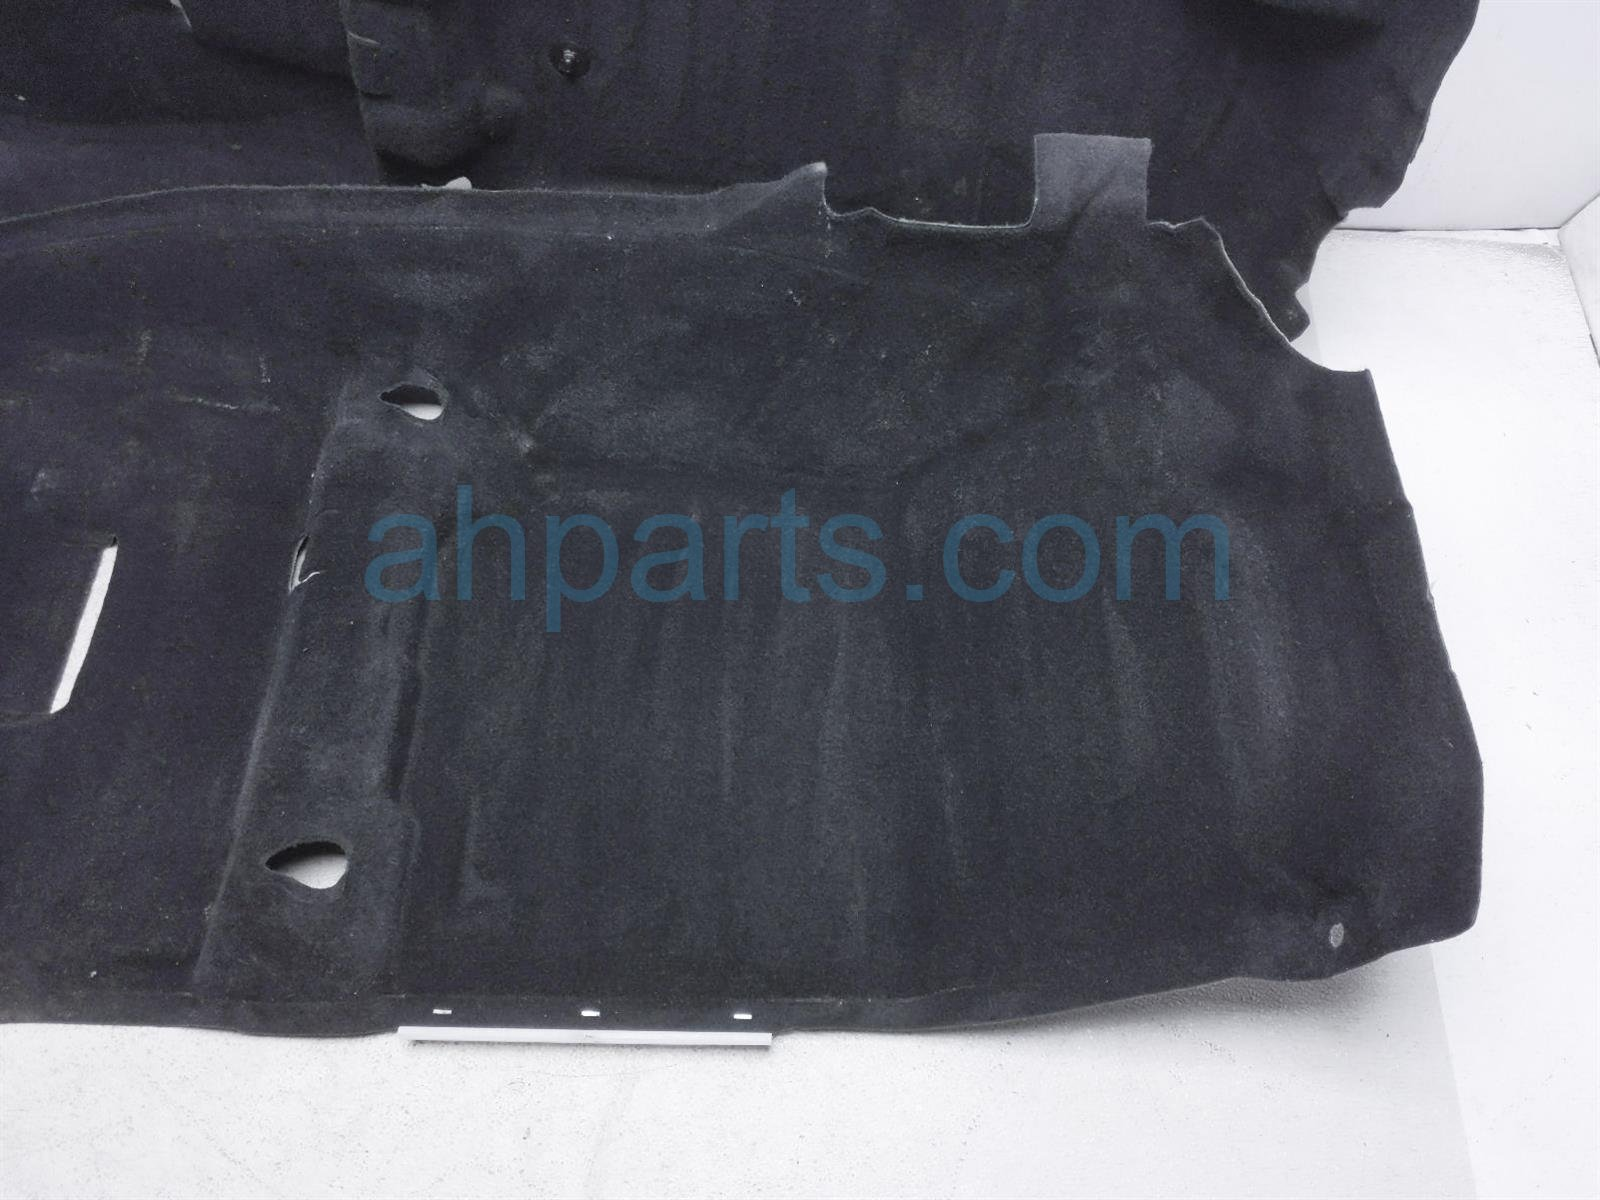 2017 Toyota Tacoma Front / Ground Floor Carpet   Black   58510 04A80 C1 Replacement